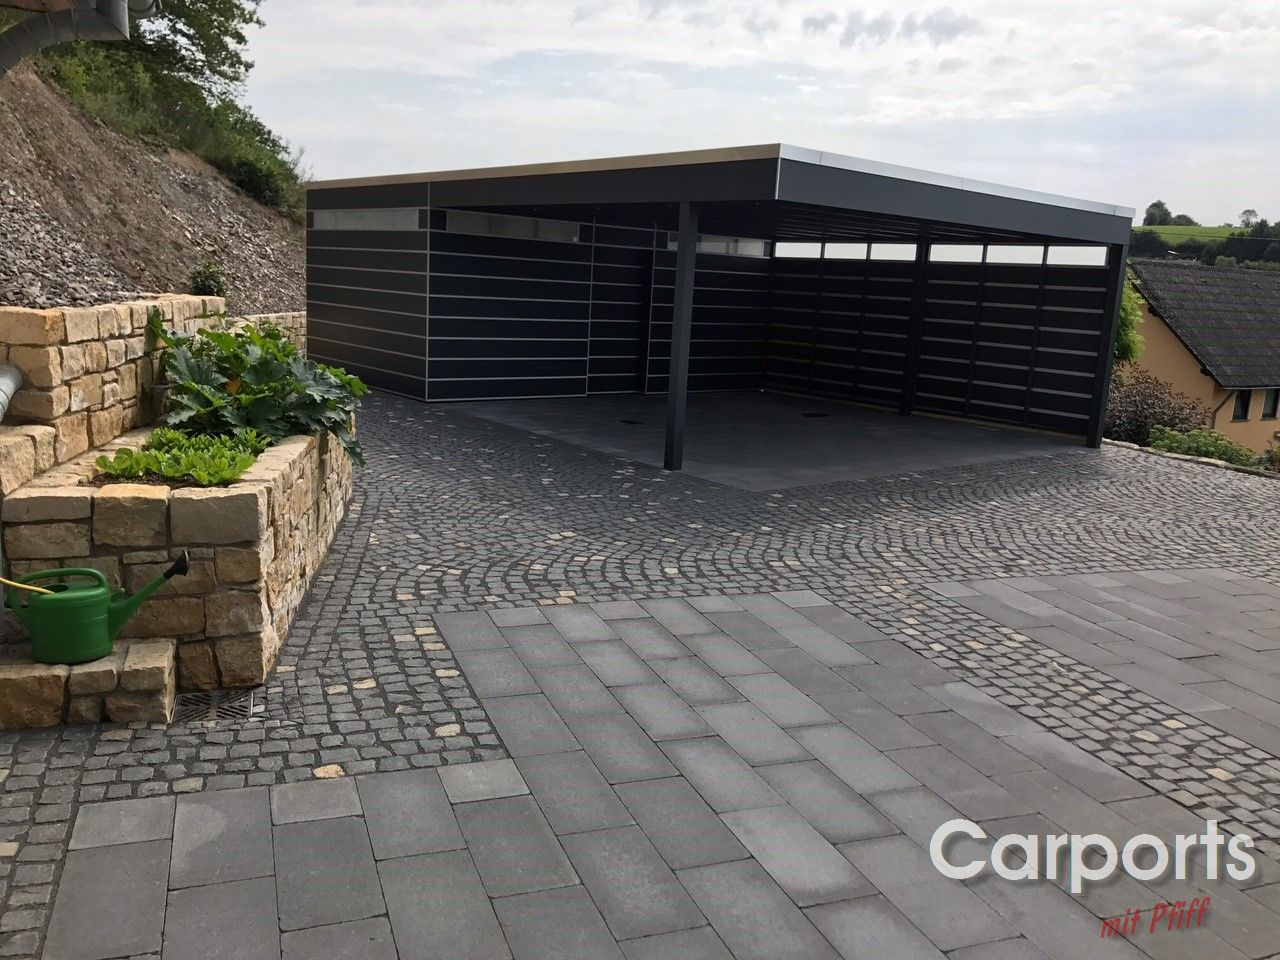 carport bauhaus hpl mit abstellraum und verkleideter seitenwand carports mit pfiff. Black Bedroom Furniture Sets. Home Design Ideas